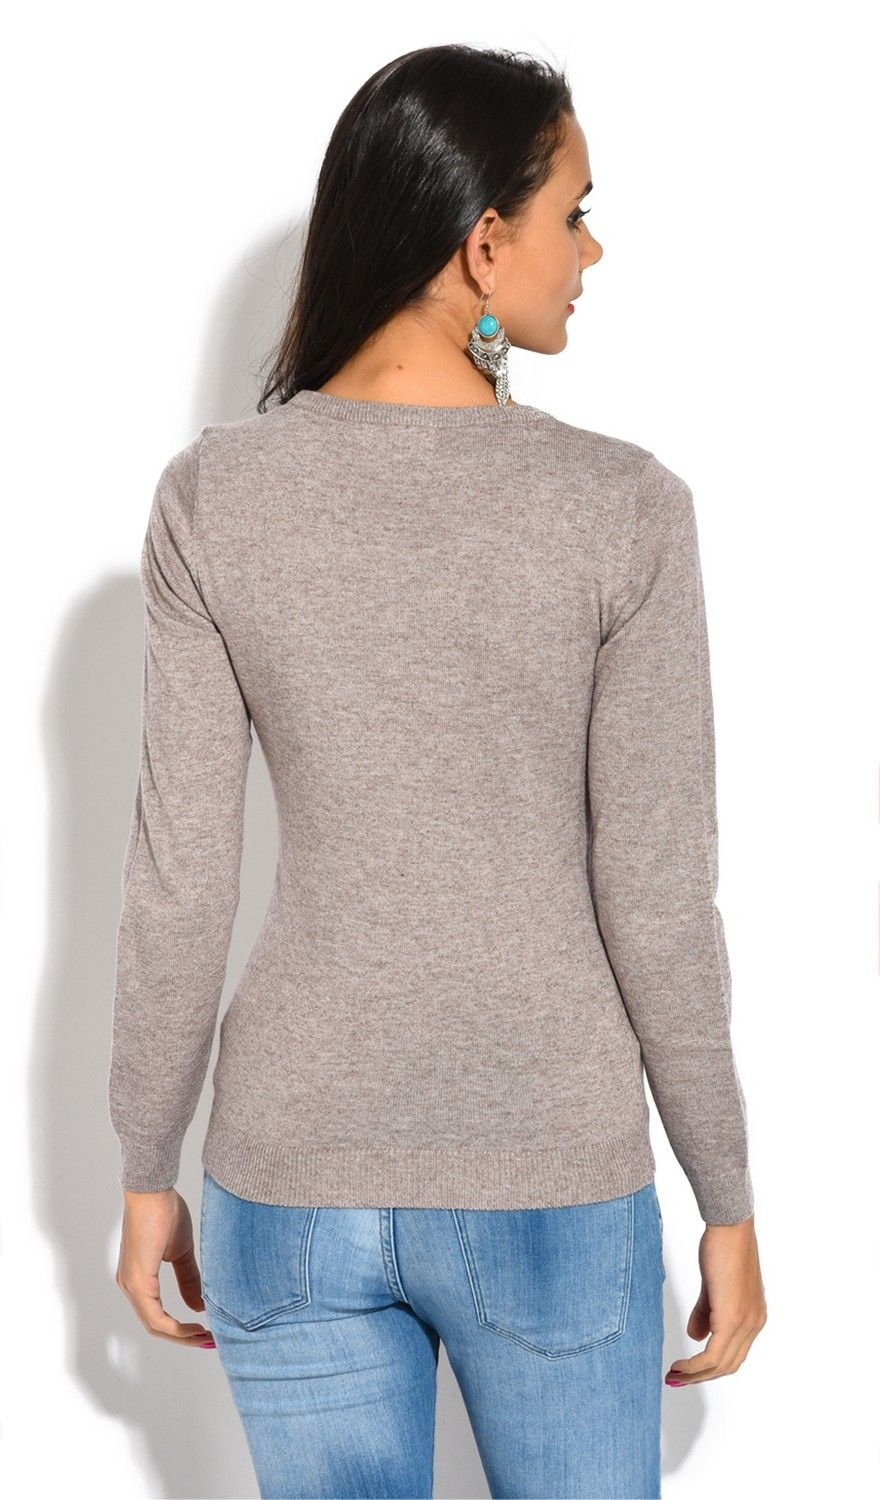 William De Faye Round Neck Buttoned Shoulder Sweater in Beige